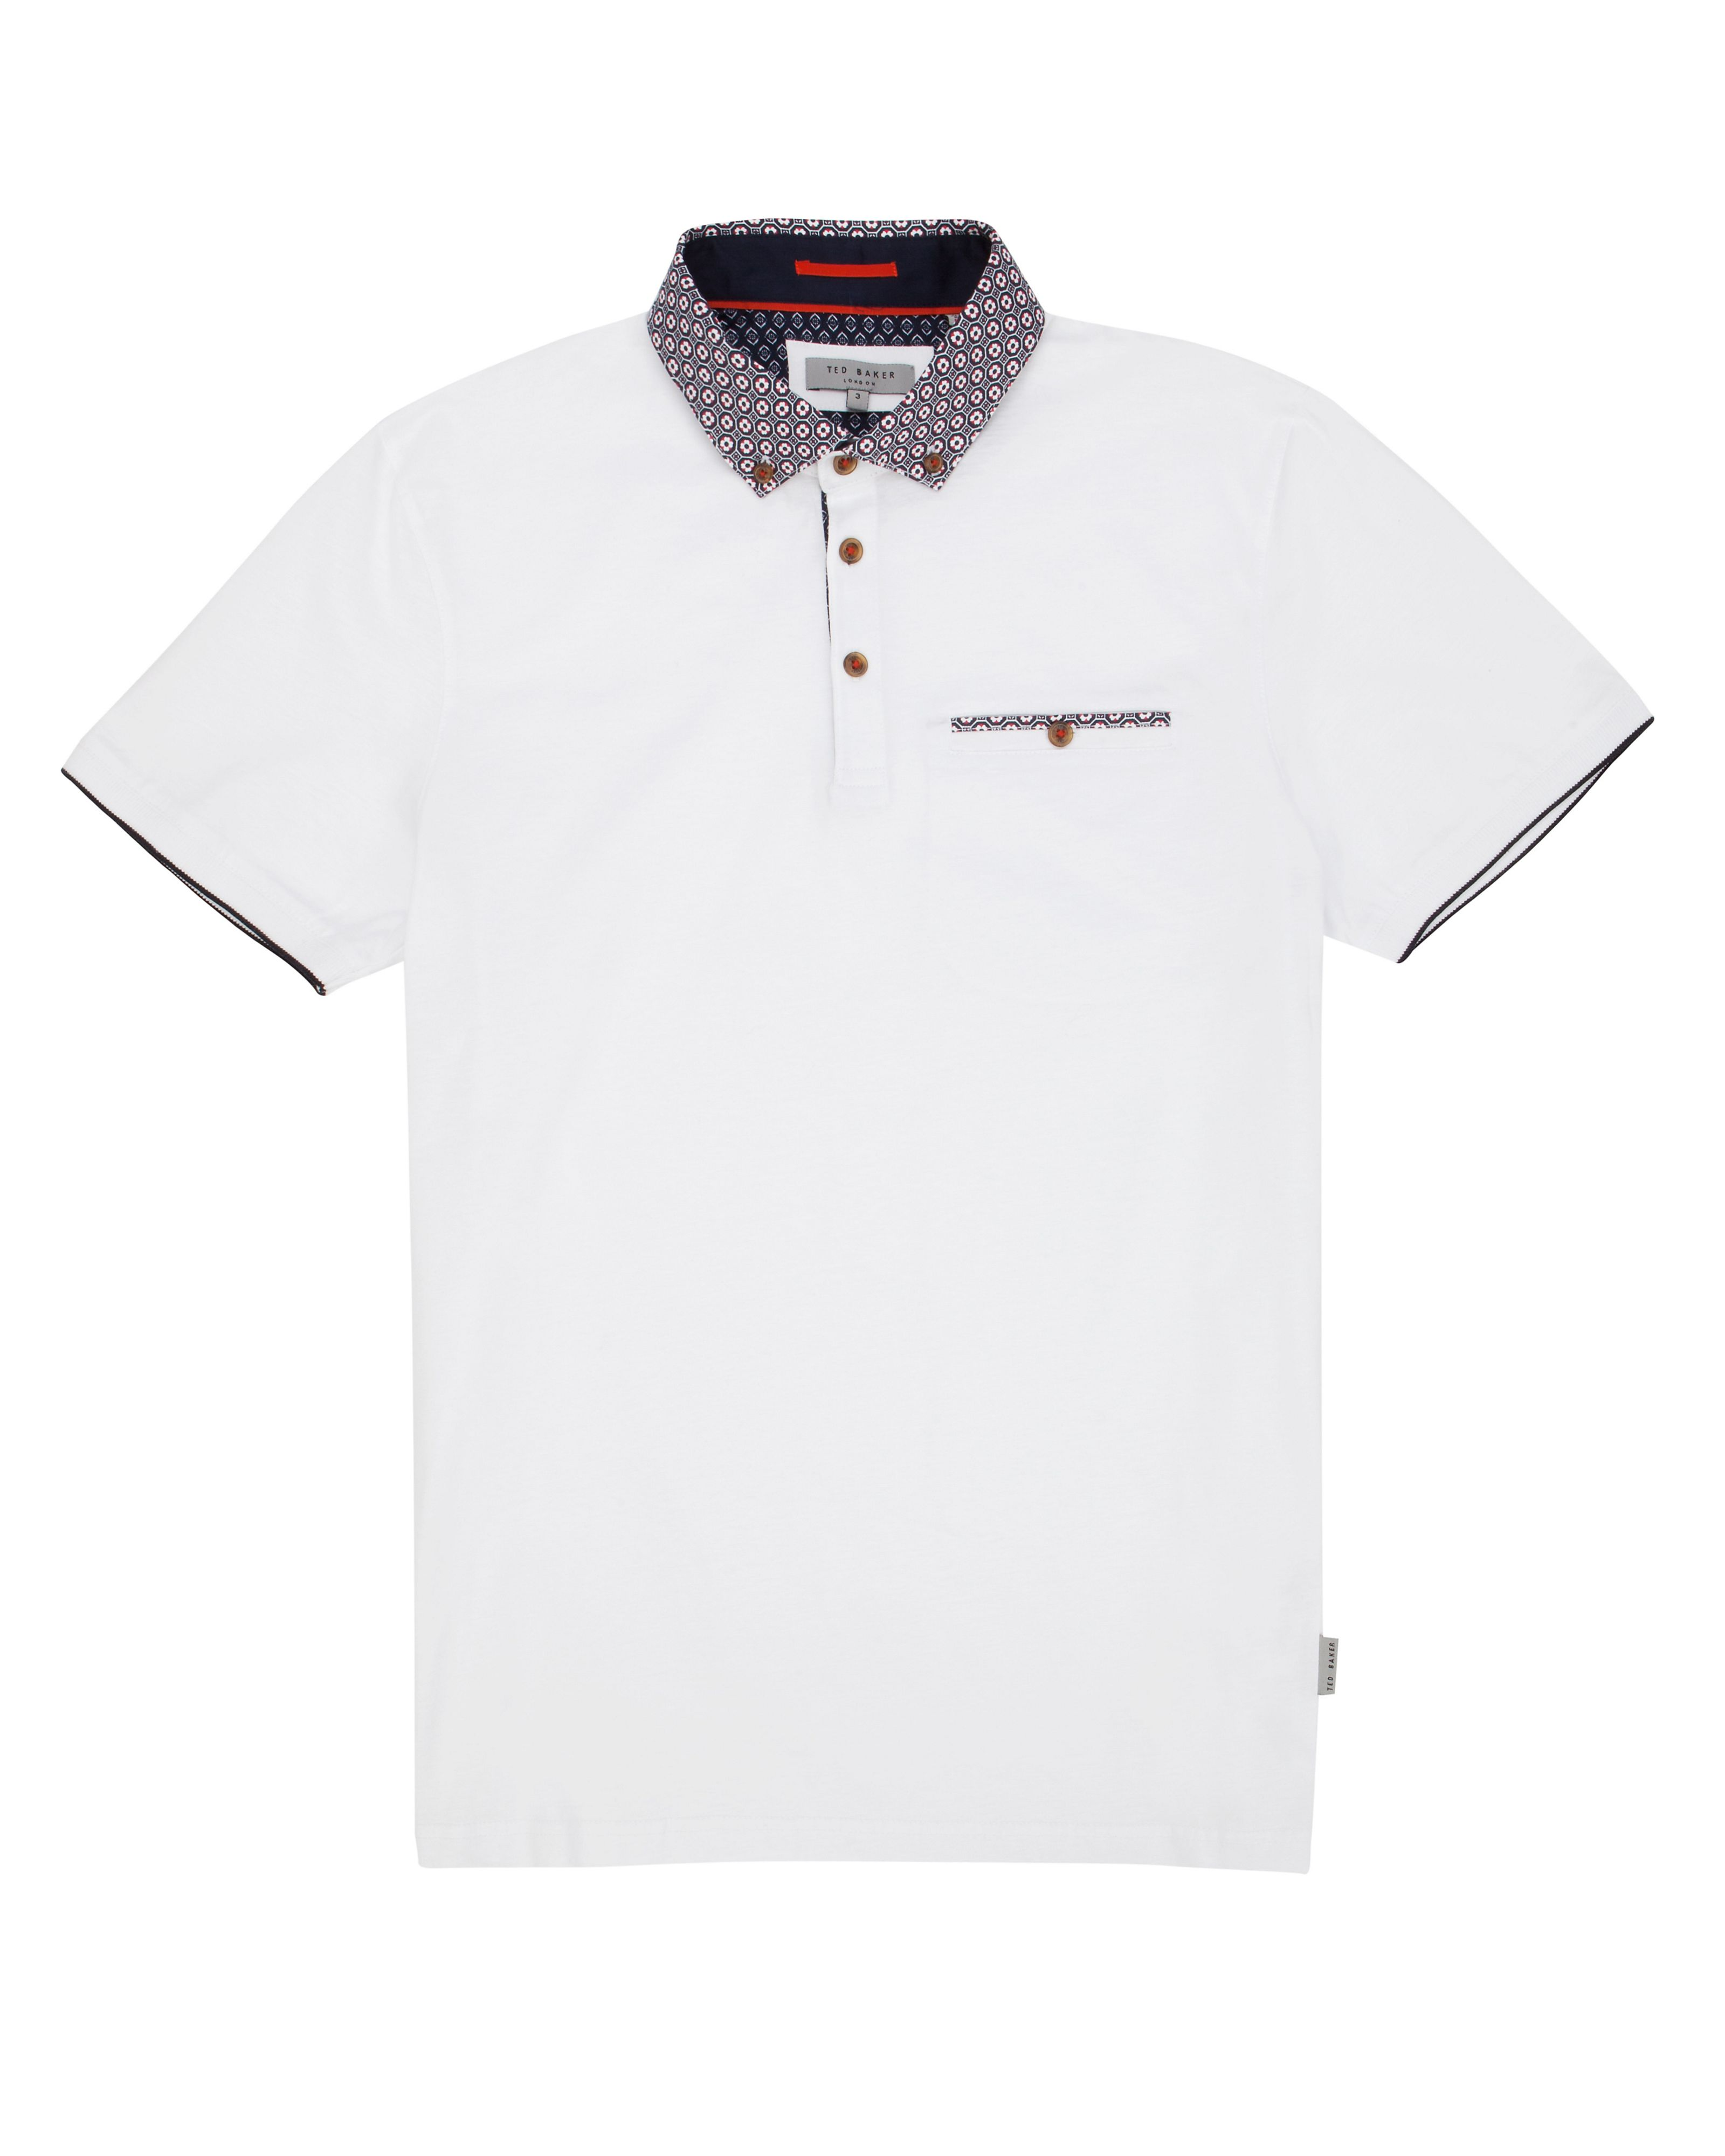 Goodwon floral polo shirt